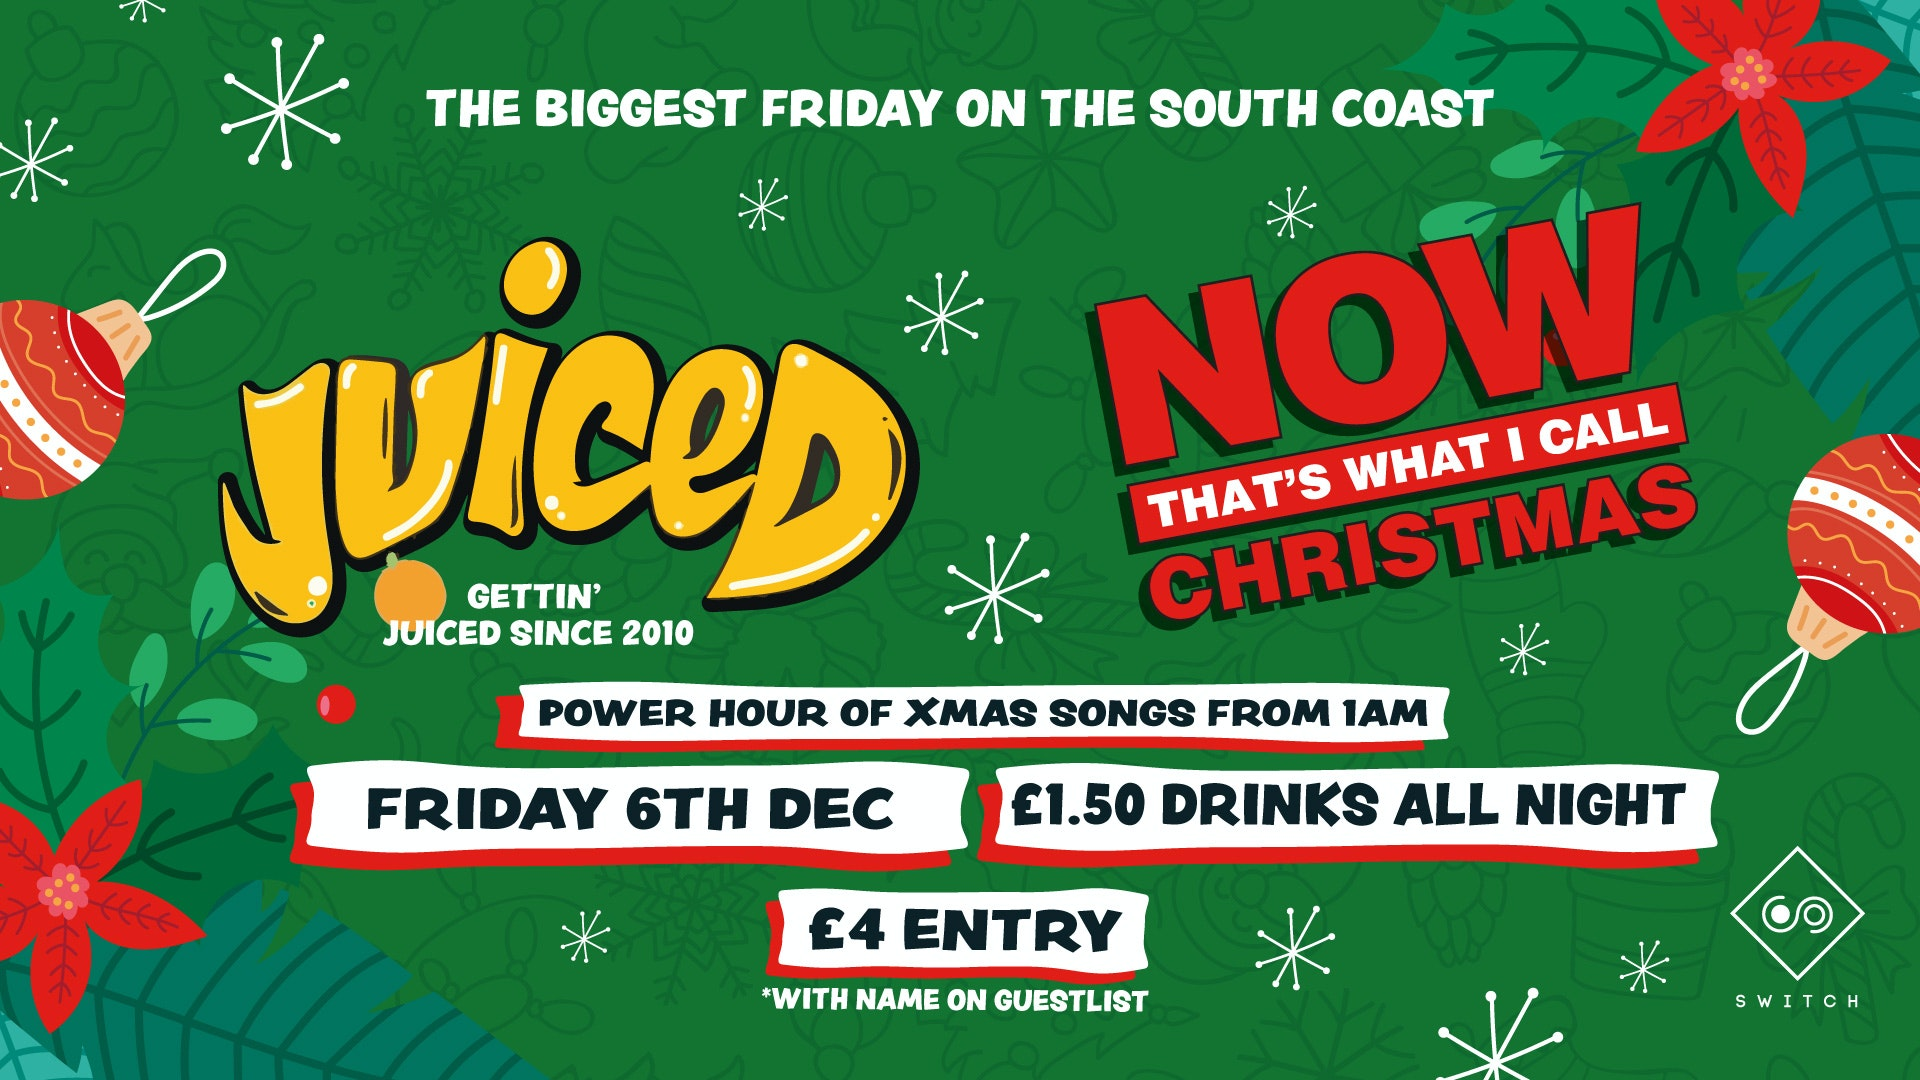 Juiced: Now Thats What I Call Christmas – £1.50 Drinks